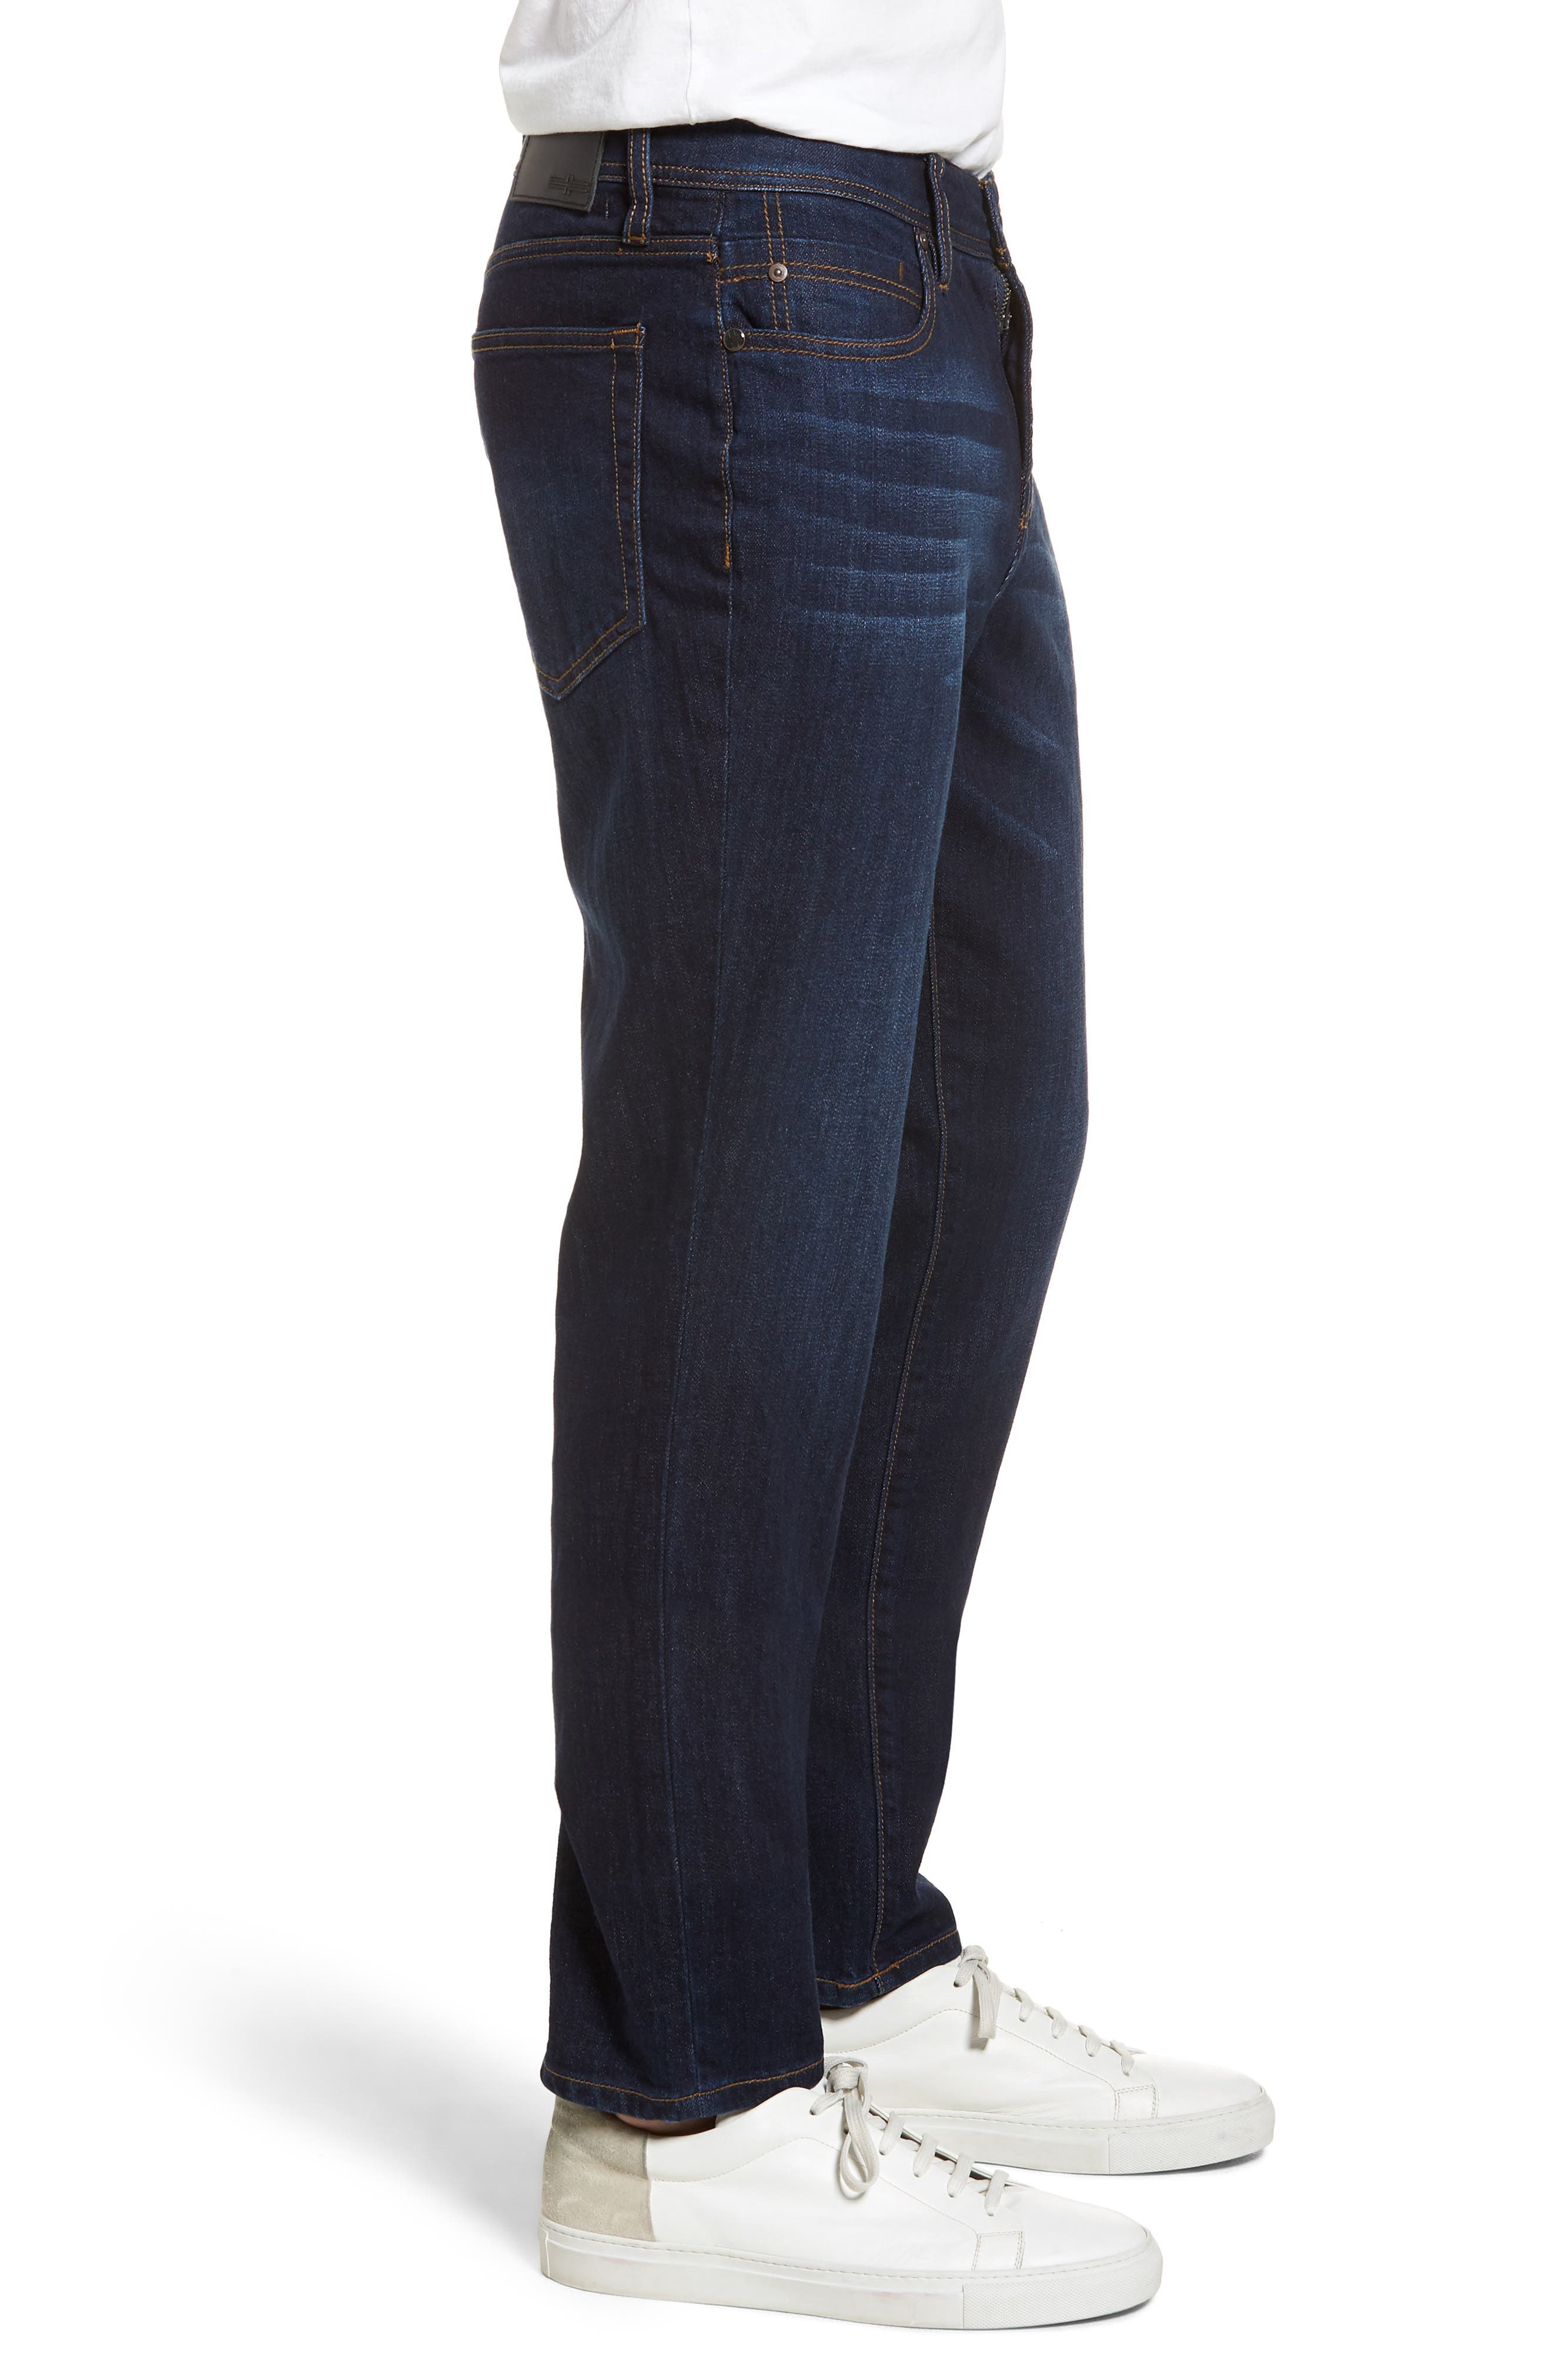 Jeans Co. Kingston Slim Straight Leg Jeans,                             Alternate thumbnail 3, color,                             SAN ARDO VINTAGE DARK